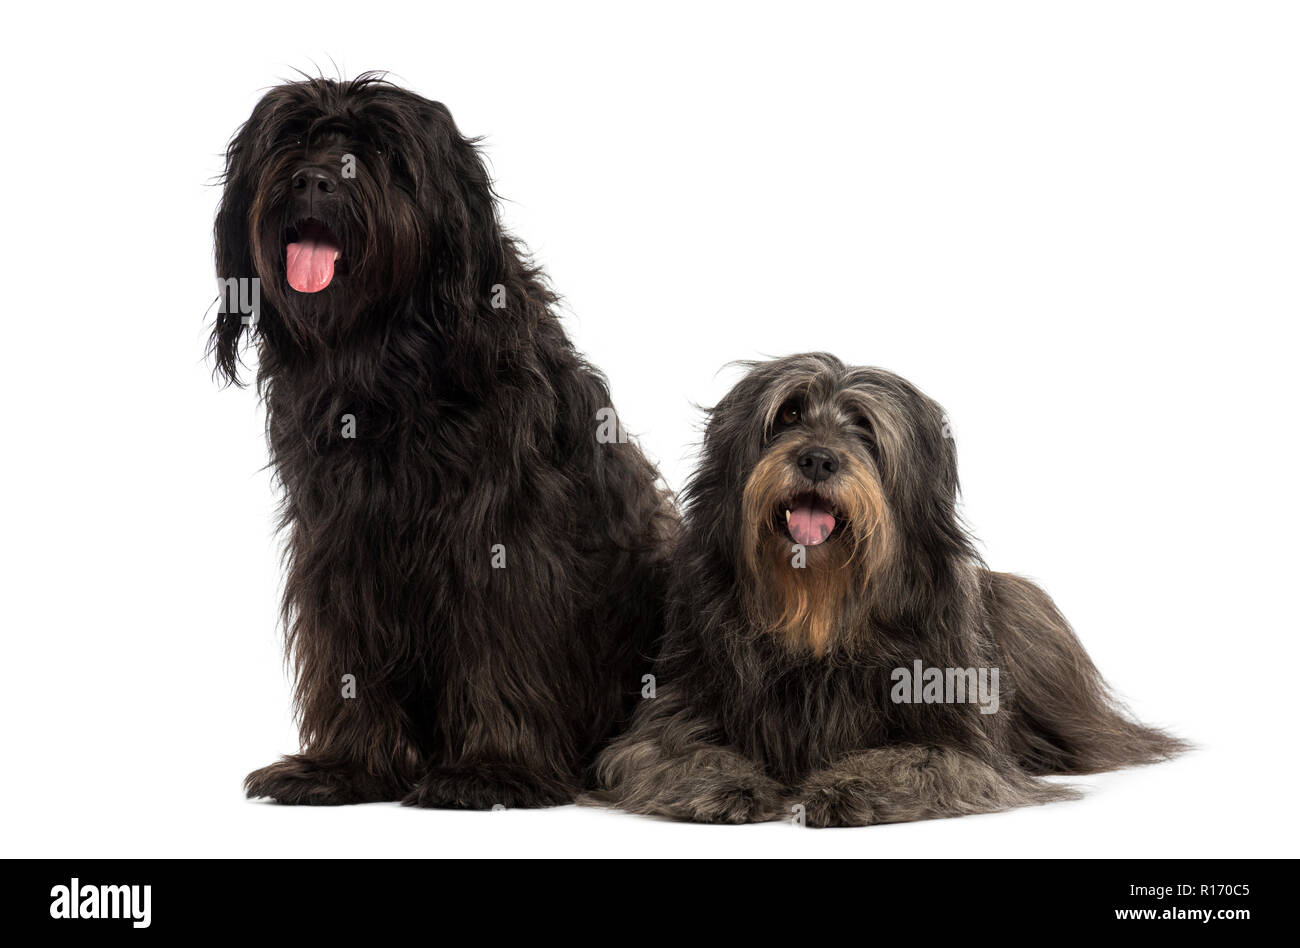 Couple of Catalan sheepdogs being together, panting, isolated on white - Stock Image